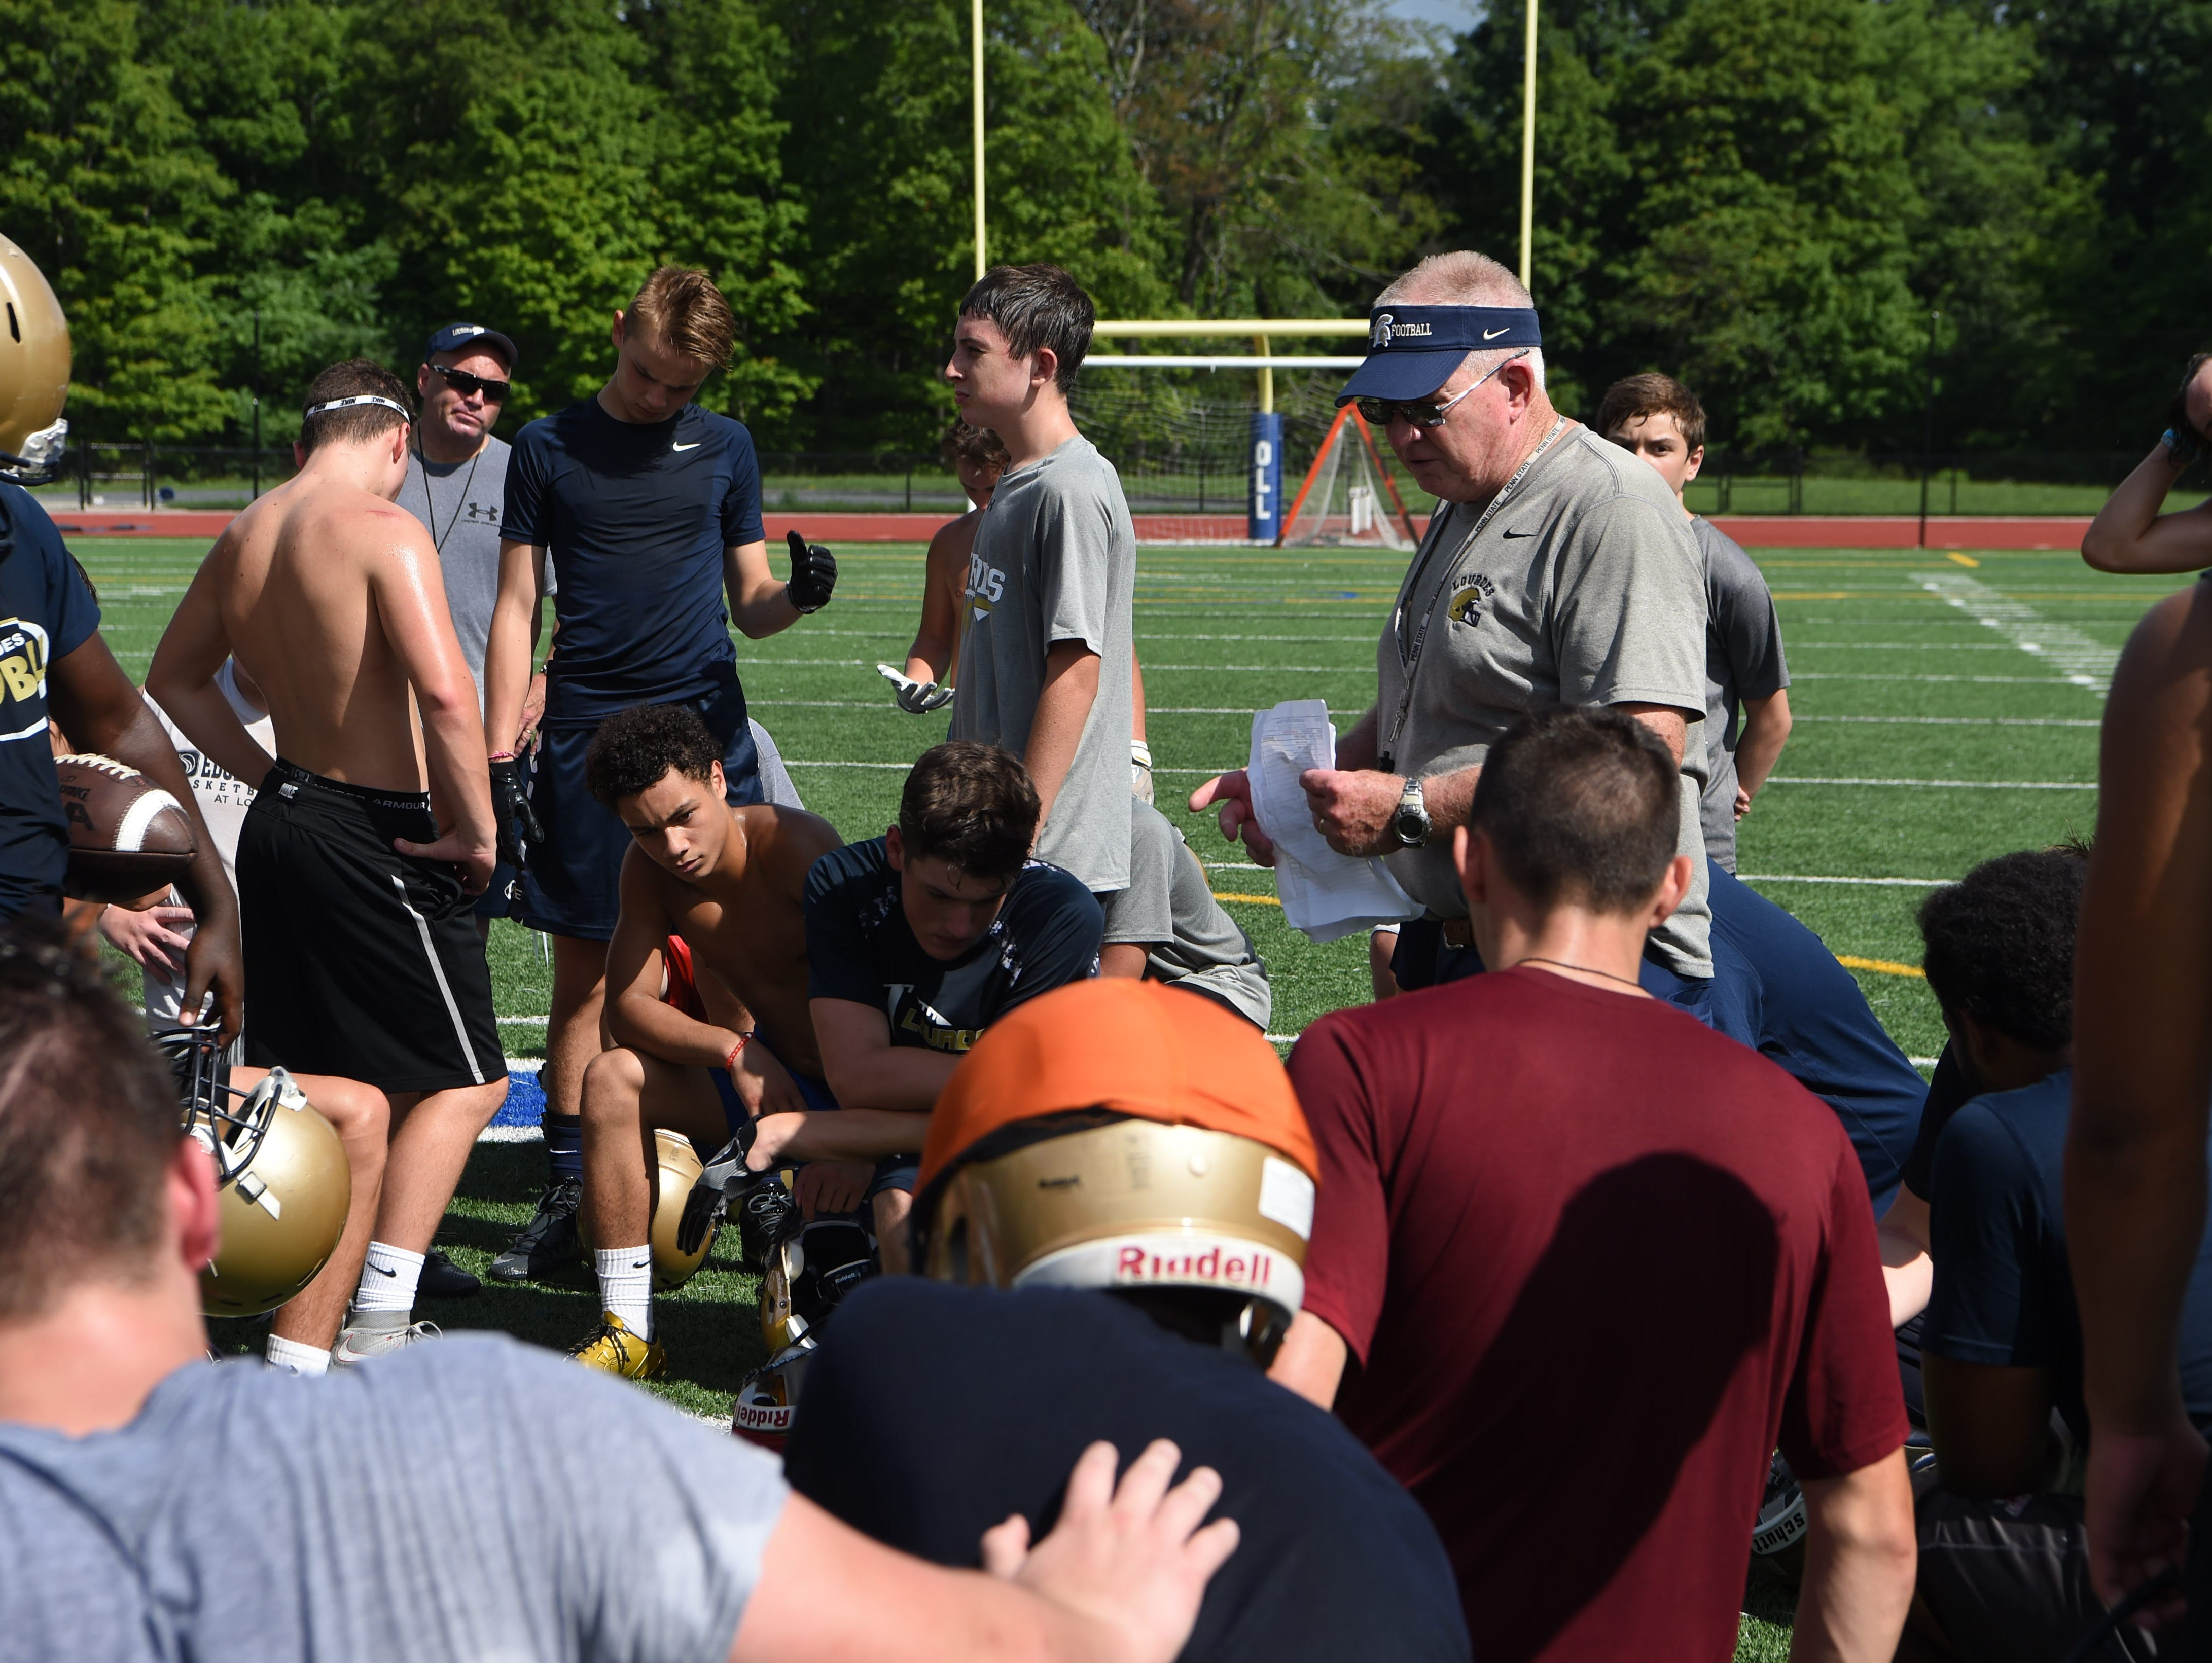 Brian Walsh, center, head coach for Our Lady of Lourdes High School's football team, talks to players before a break in preseason football practice.